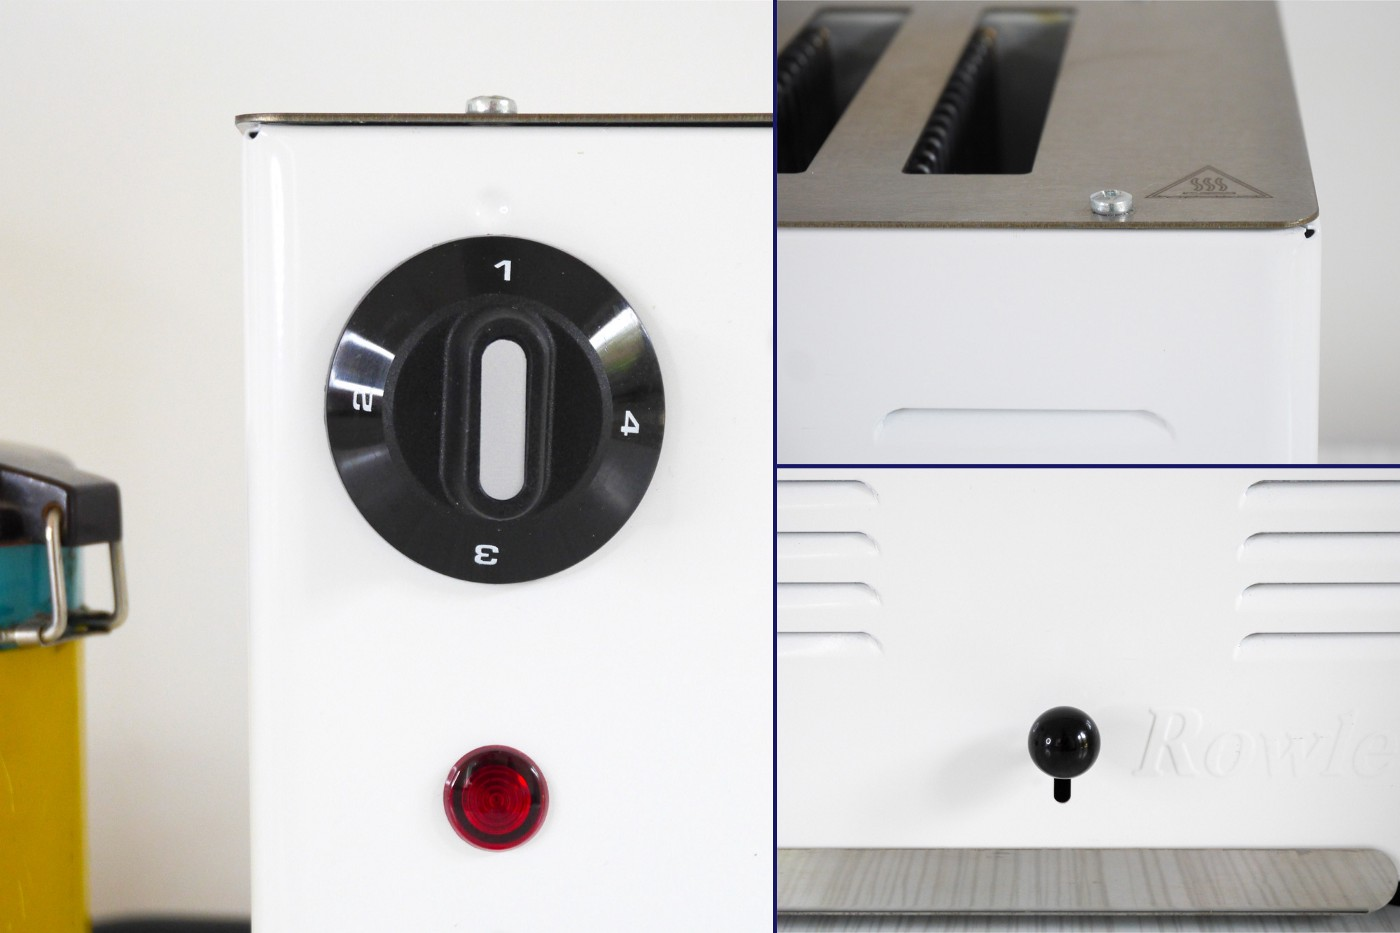 Some close up details of the toaster